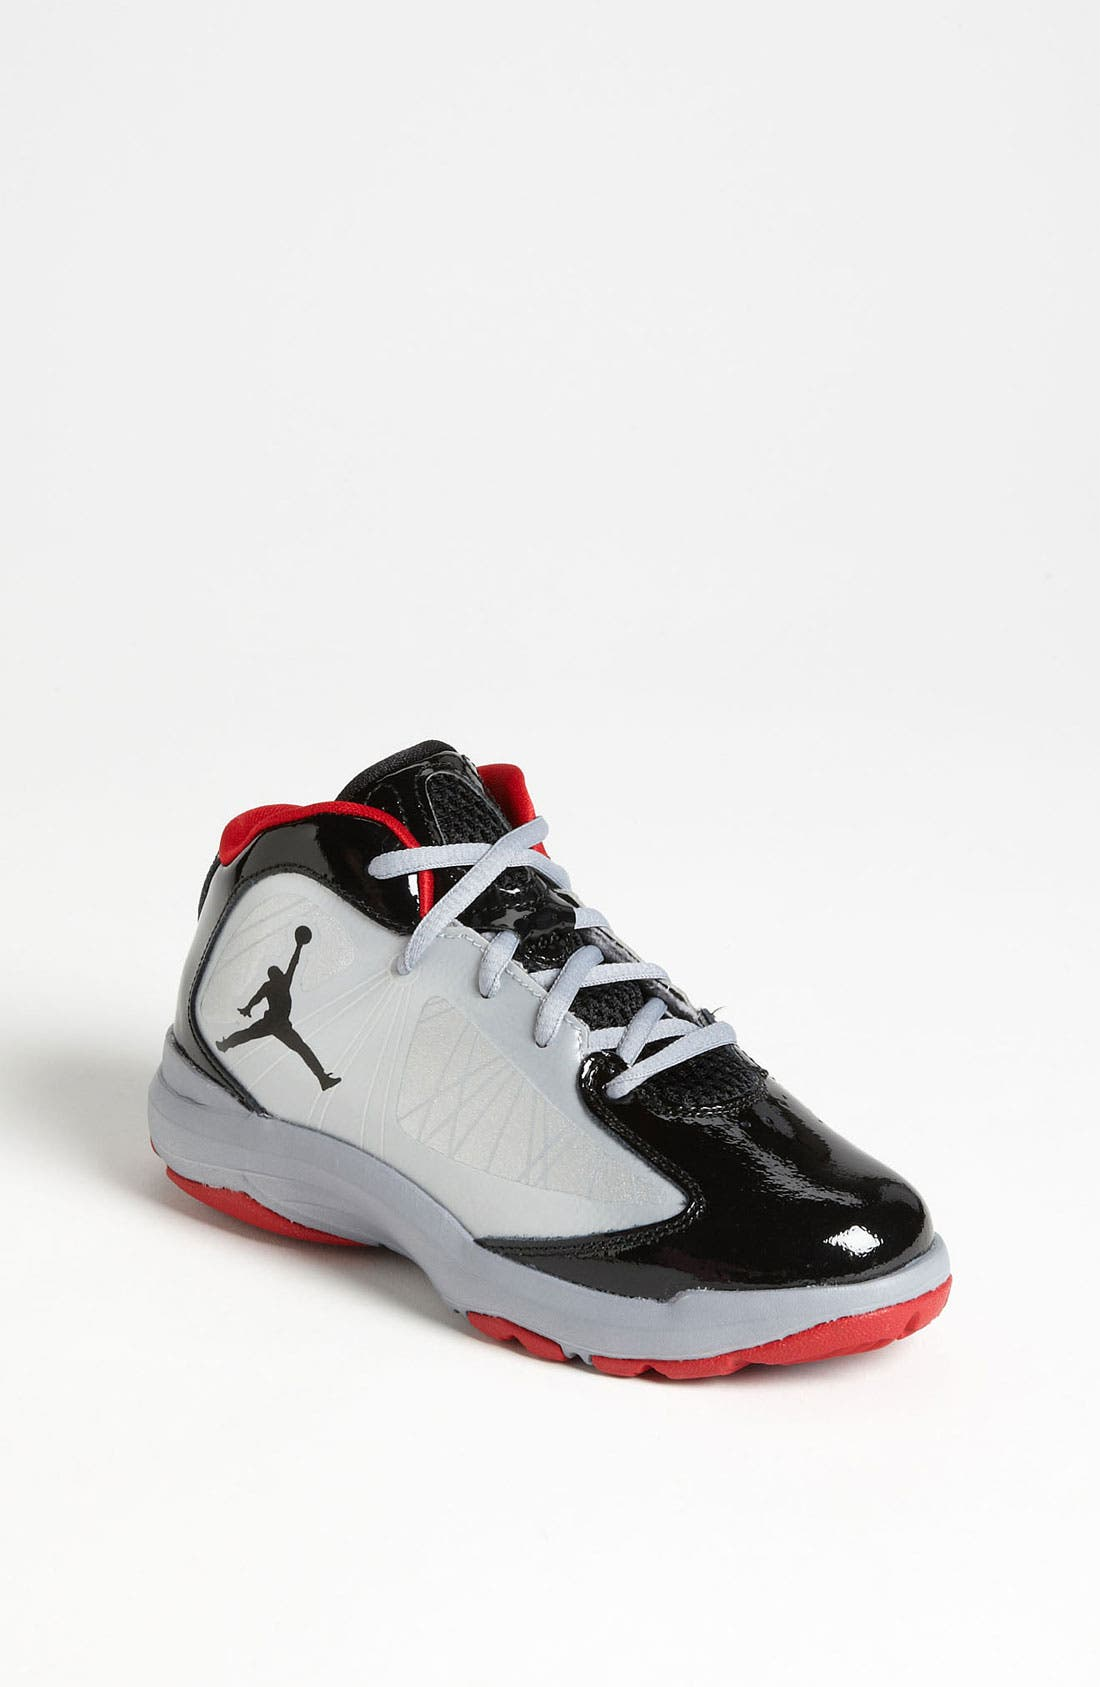 Main Image - Nike 'Jordan Aero Flight' Sneaker (Toddler & Little Kid)